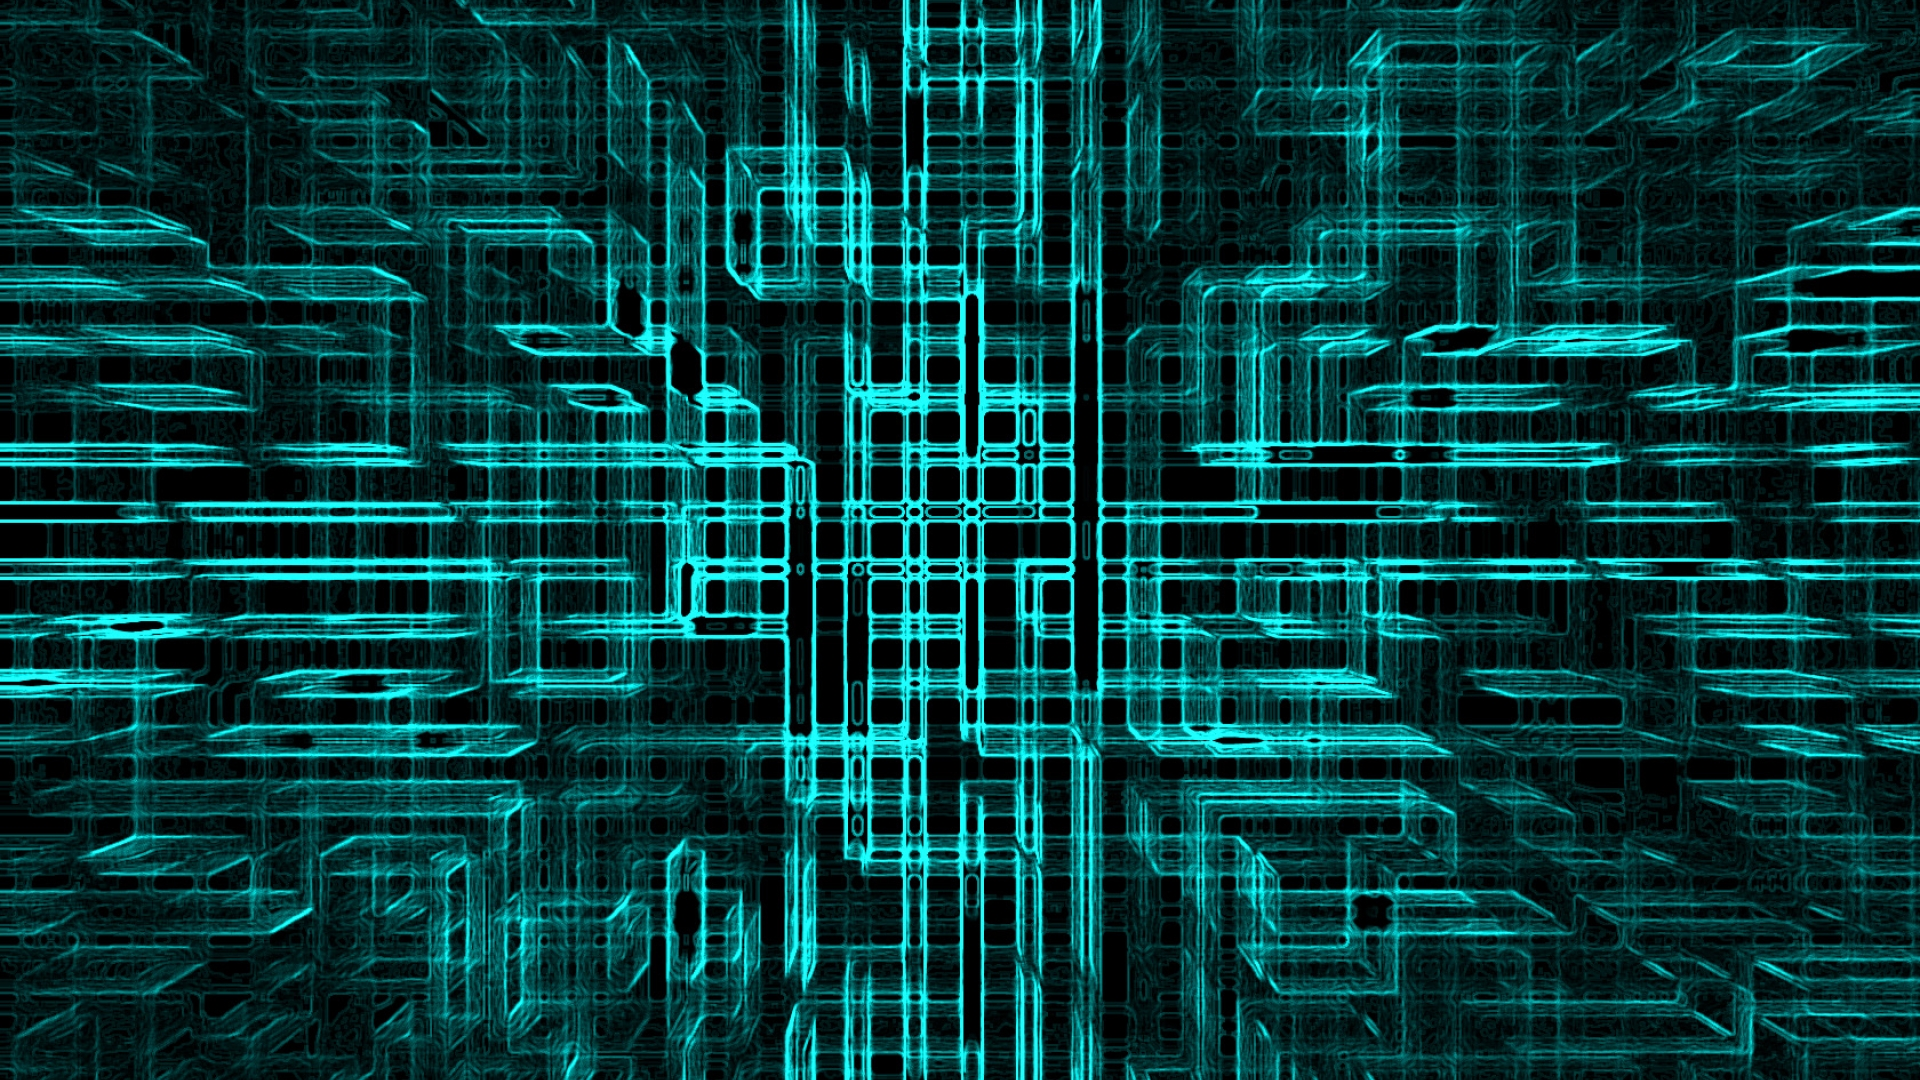 fururistic-grid-pattern-Download-futuristic-HD-wallpaper-wp3805751